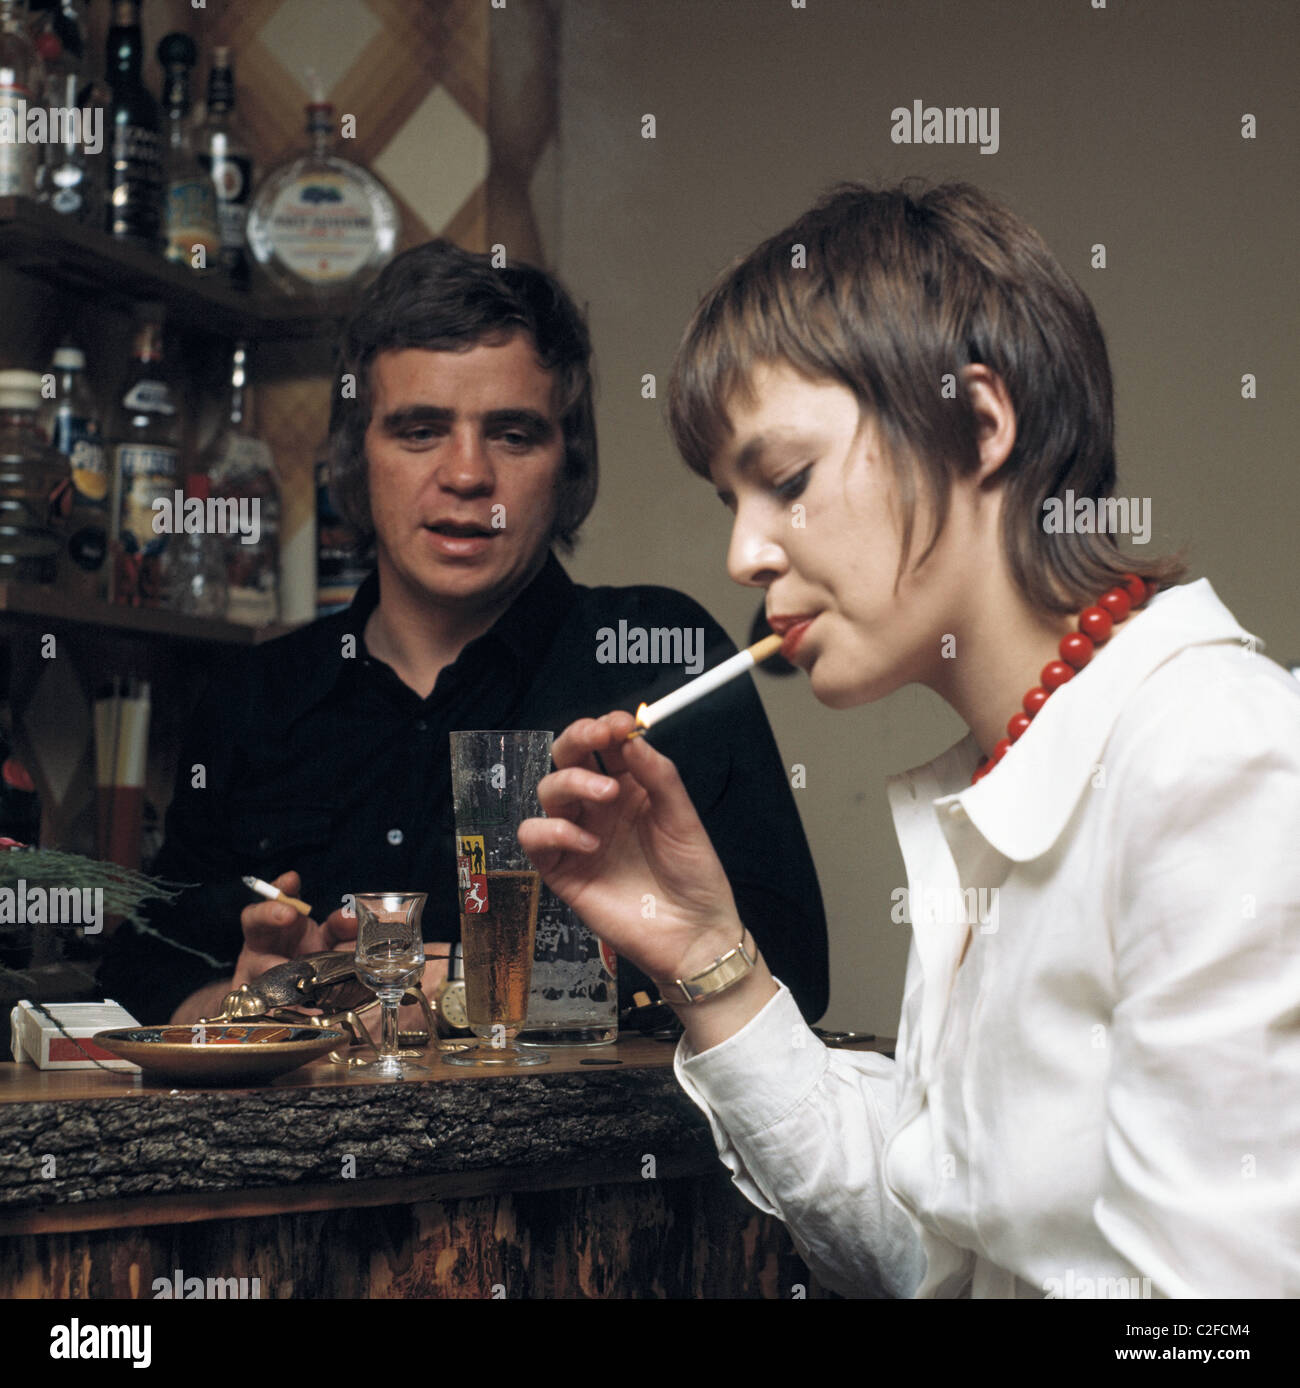 Seventies, people, freetime, semiluxury food, alcohol and tobacco, young woman and a man in a cellar bar, woman - Stock Image